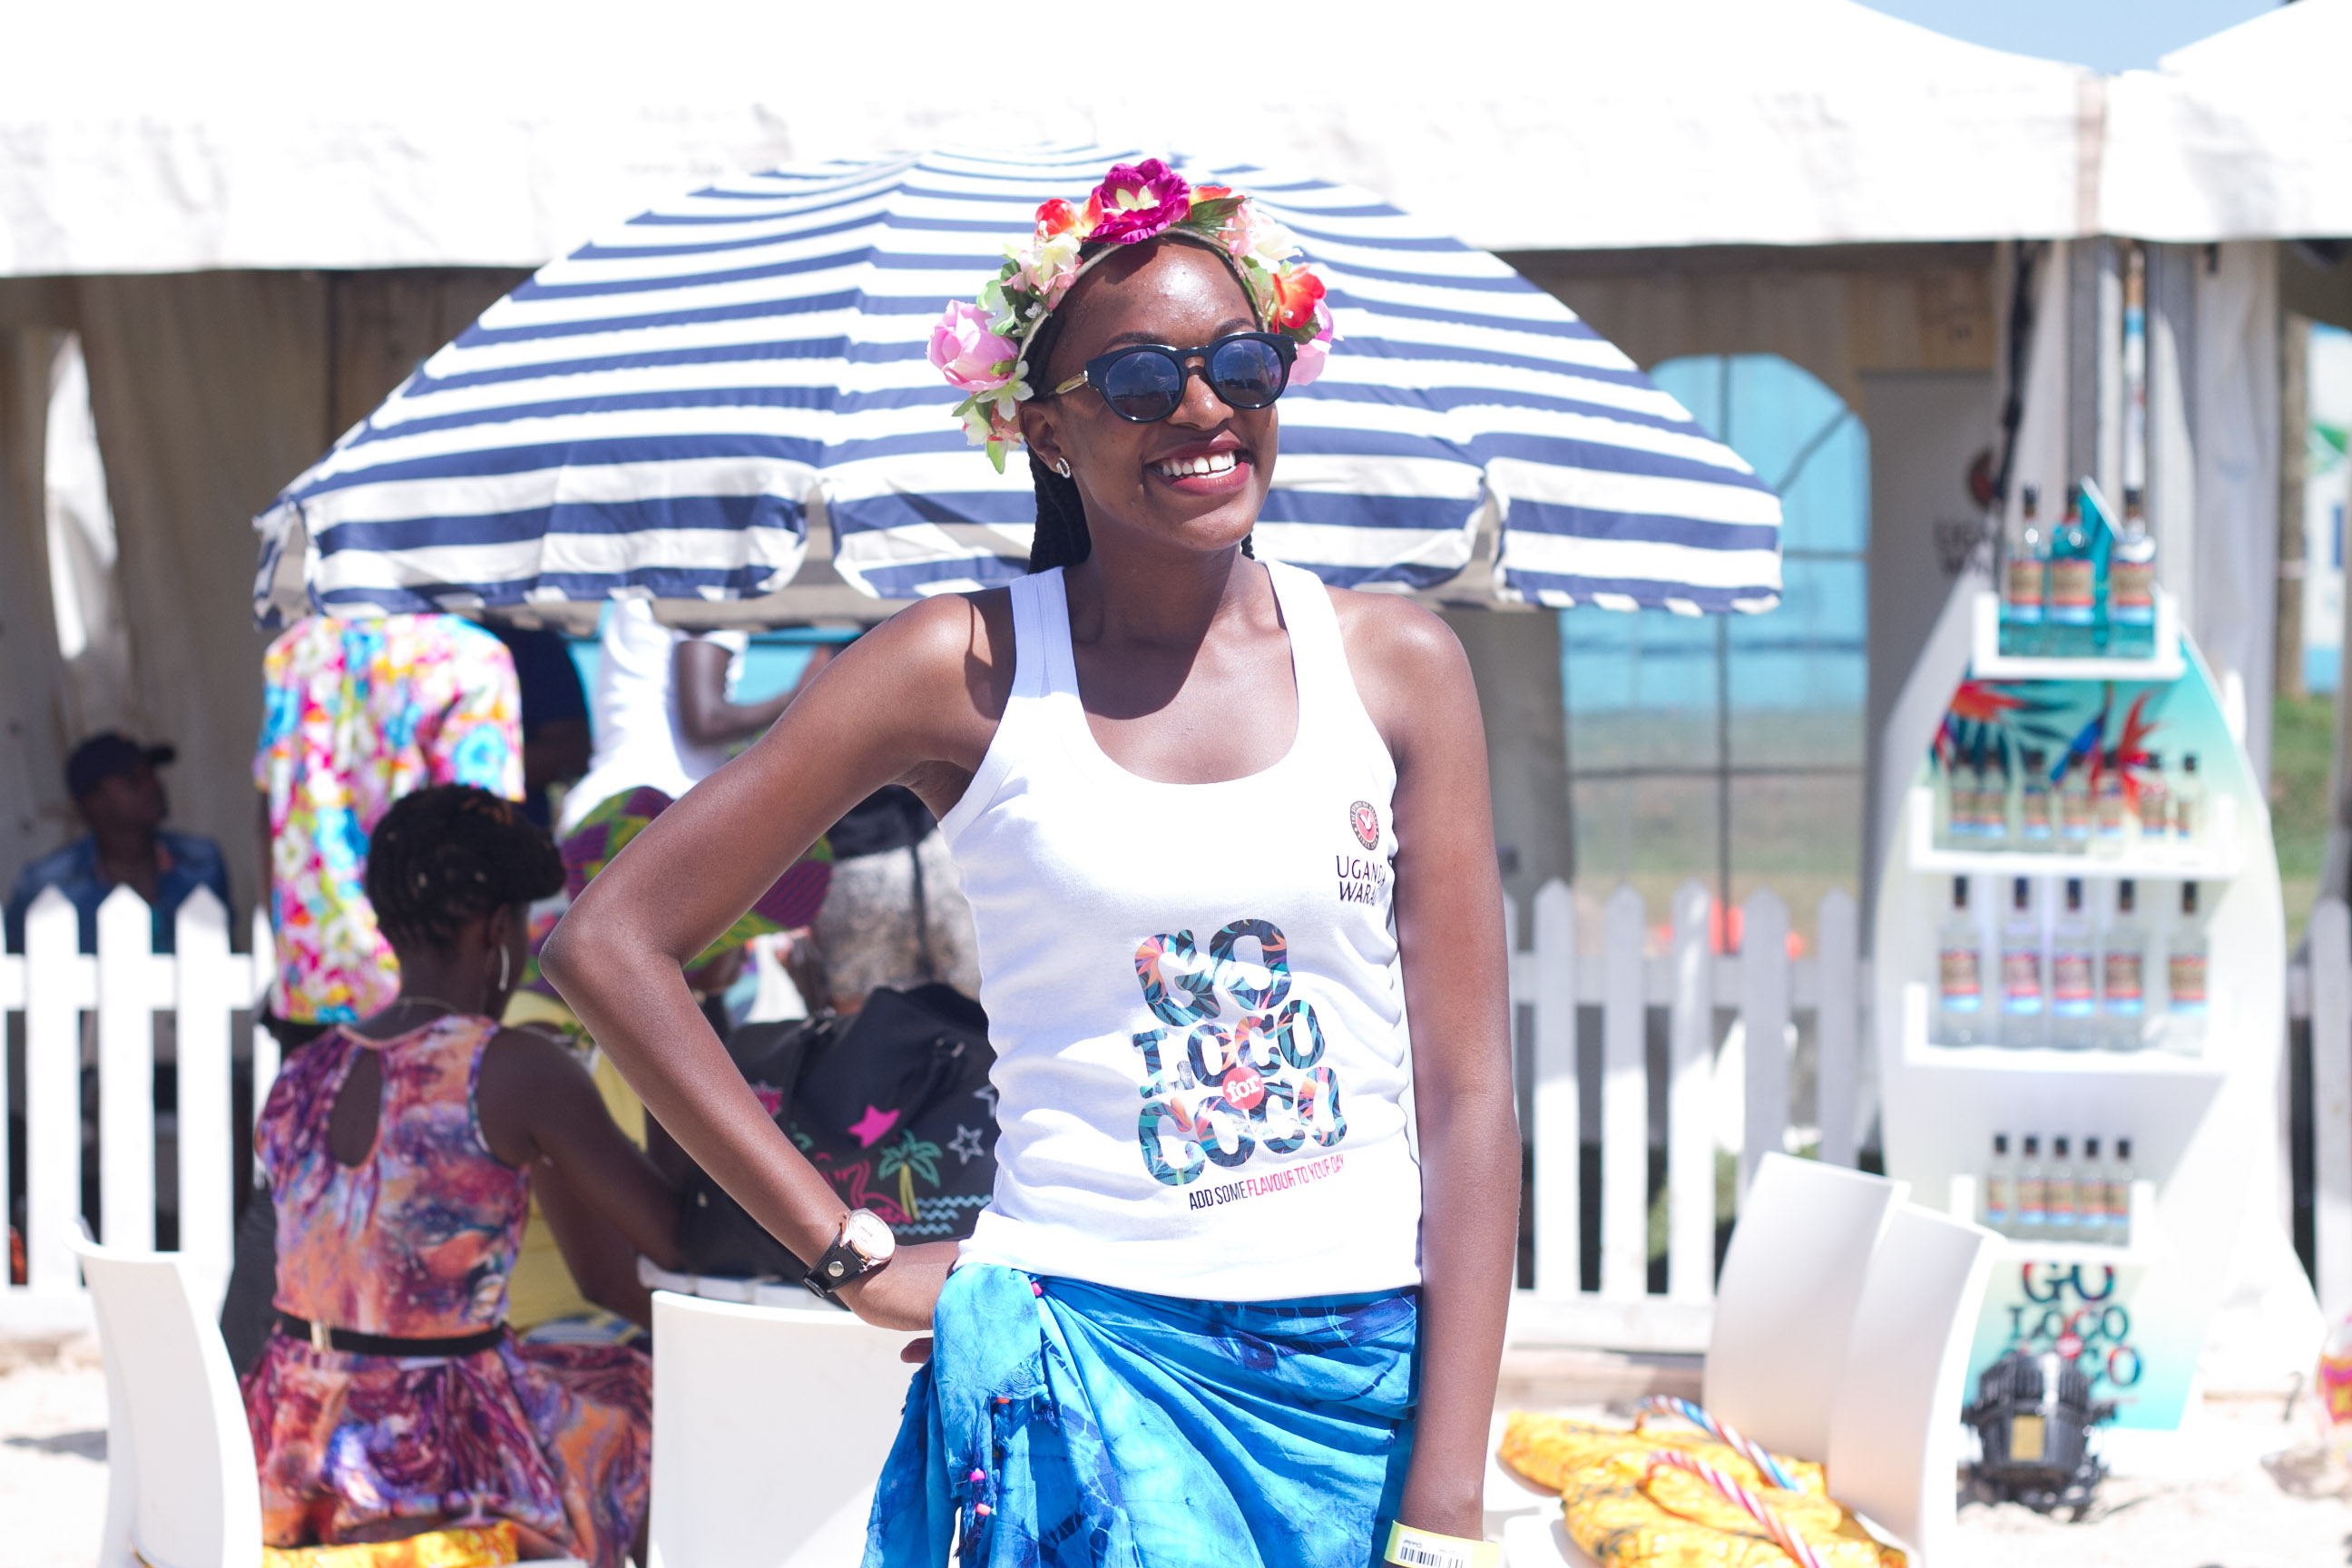 Ugandans Go Loco for Coco at Blankets and Wine